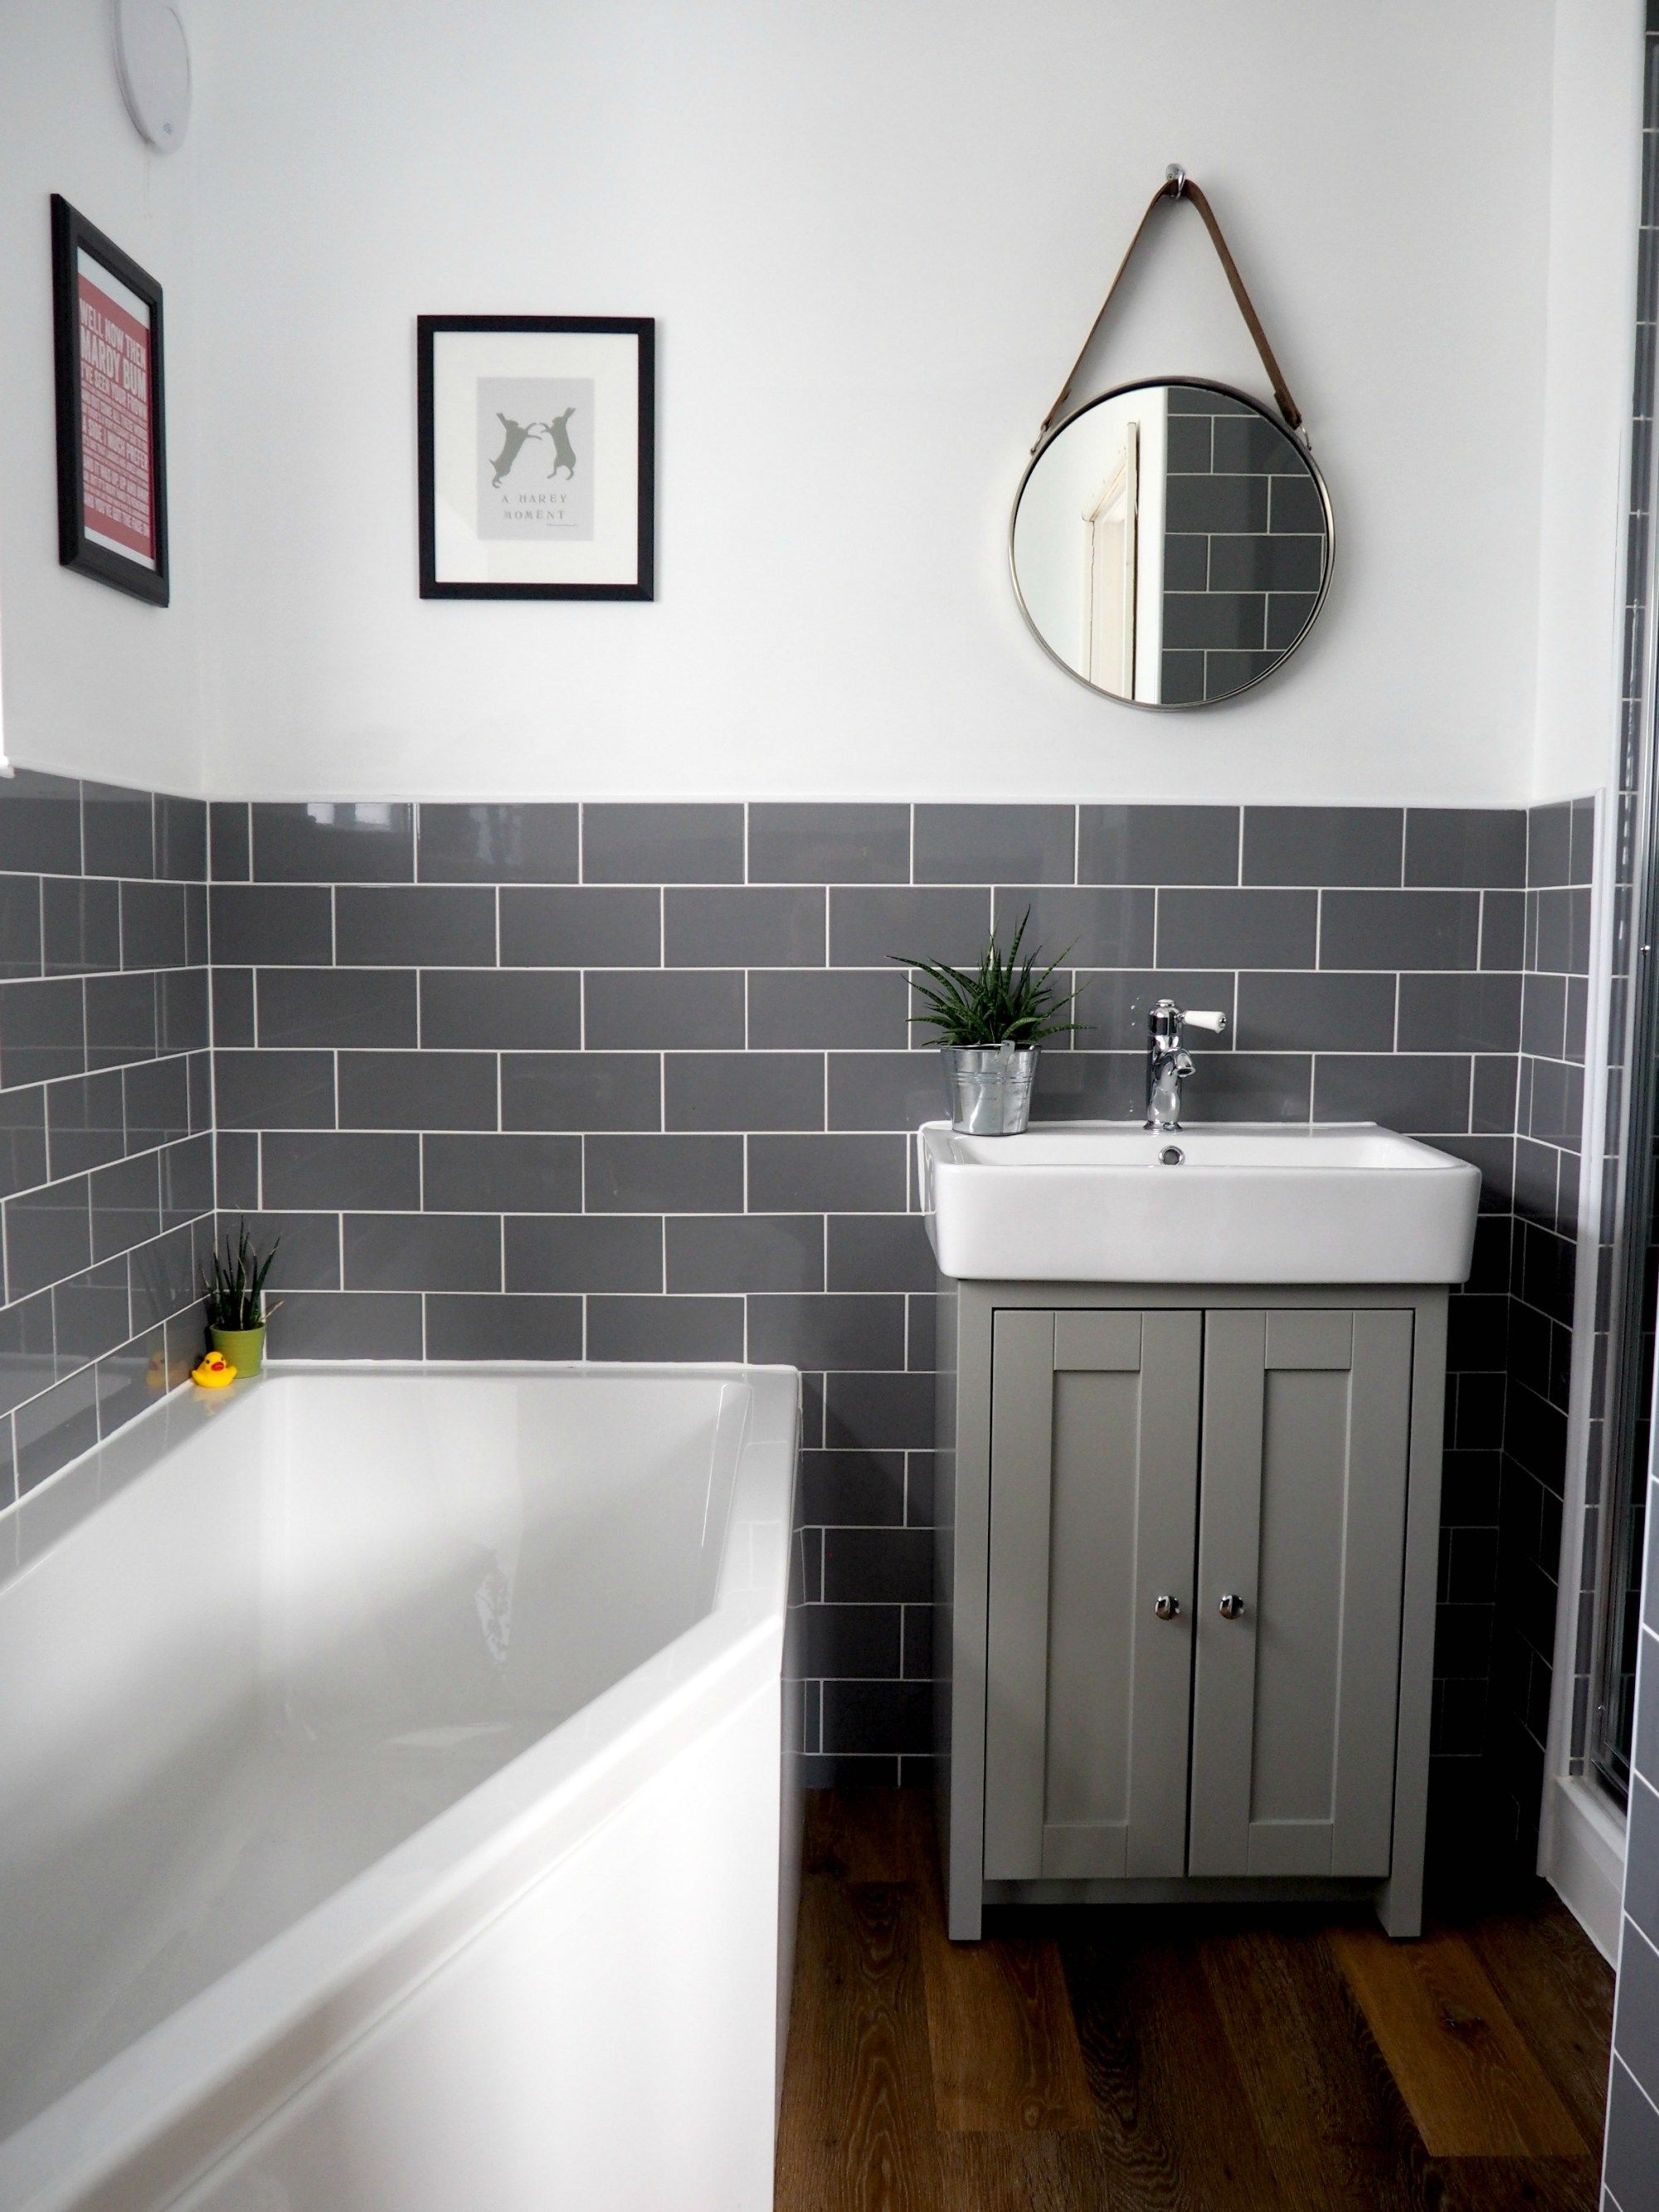 Bathroom Renovation Ideas: Bathroom Remodel Cost, Bathroom